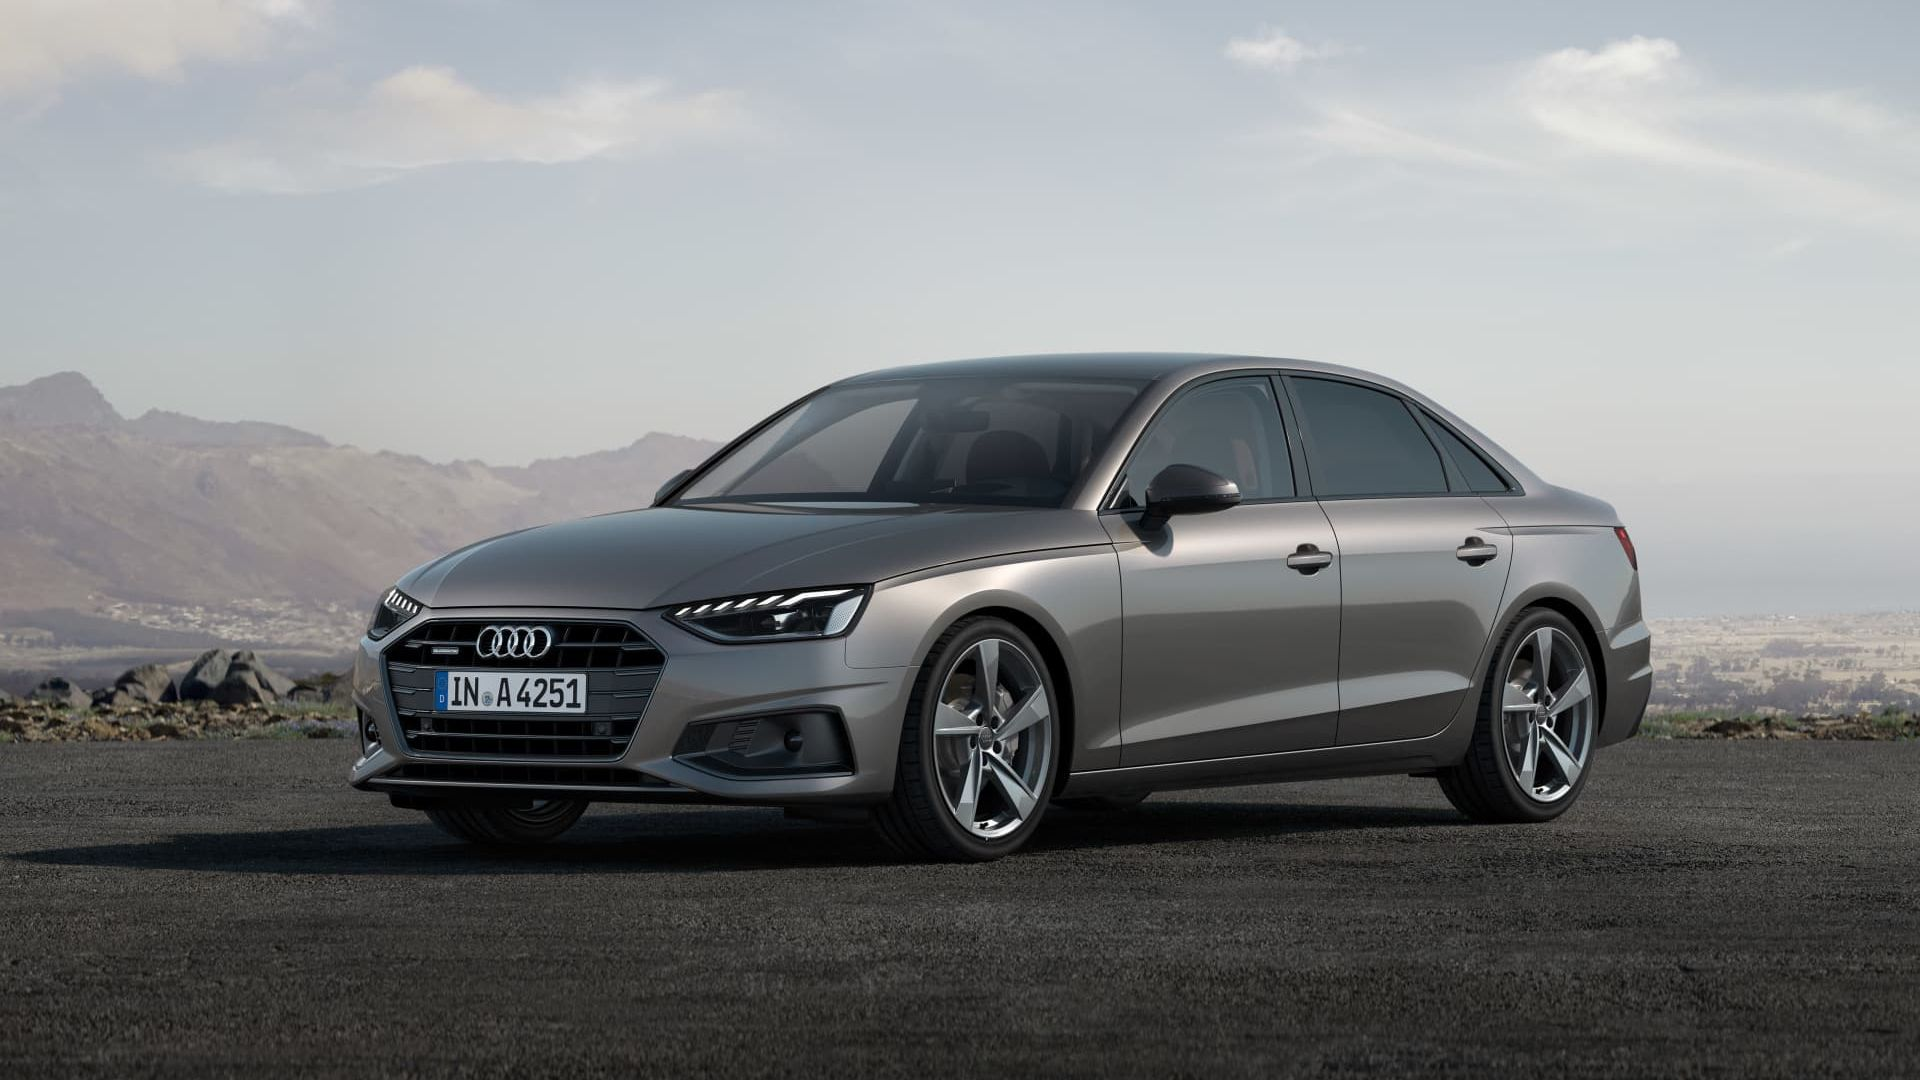 Audi A4 Berlina 35 Tfsi Advanced Edition 6v